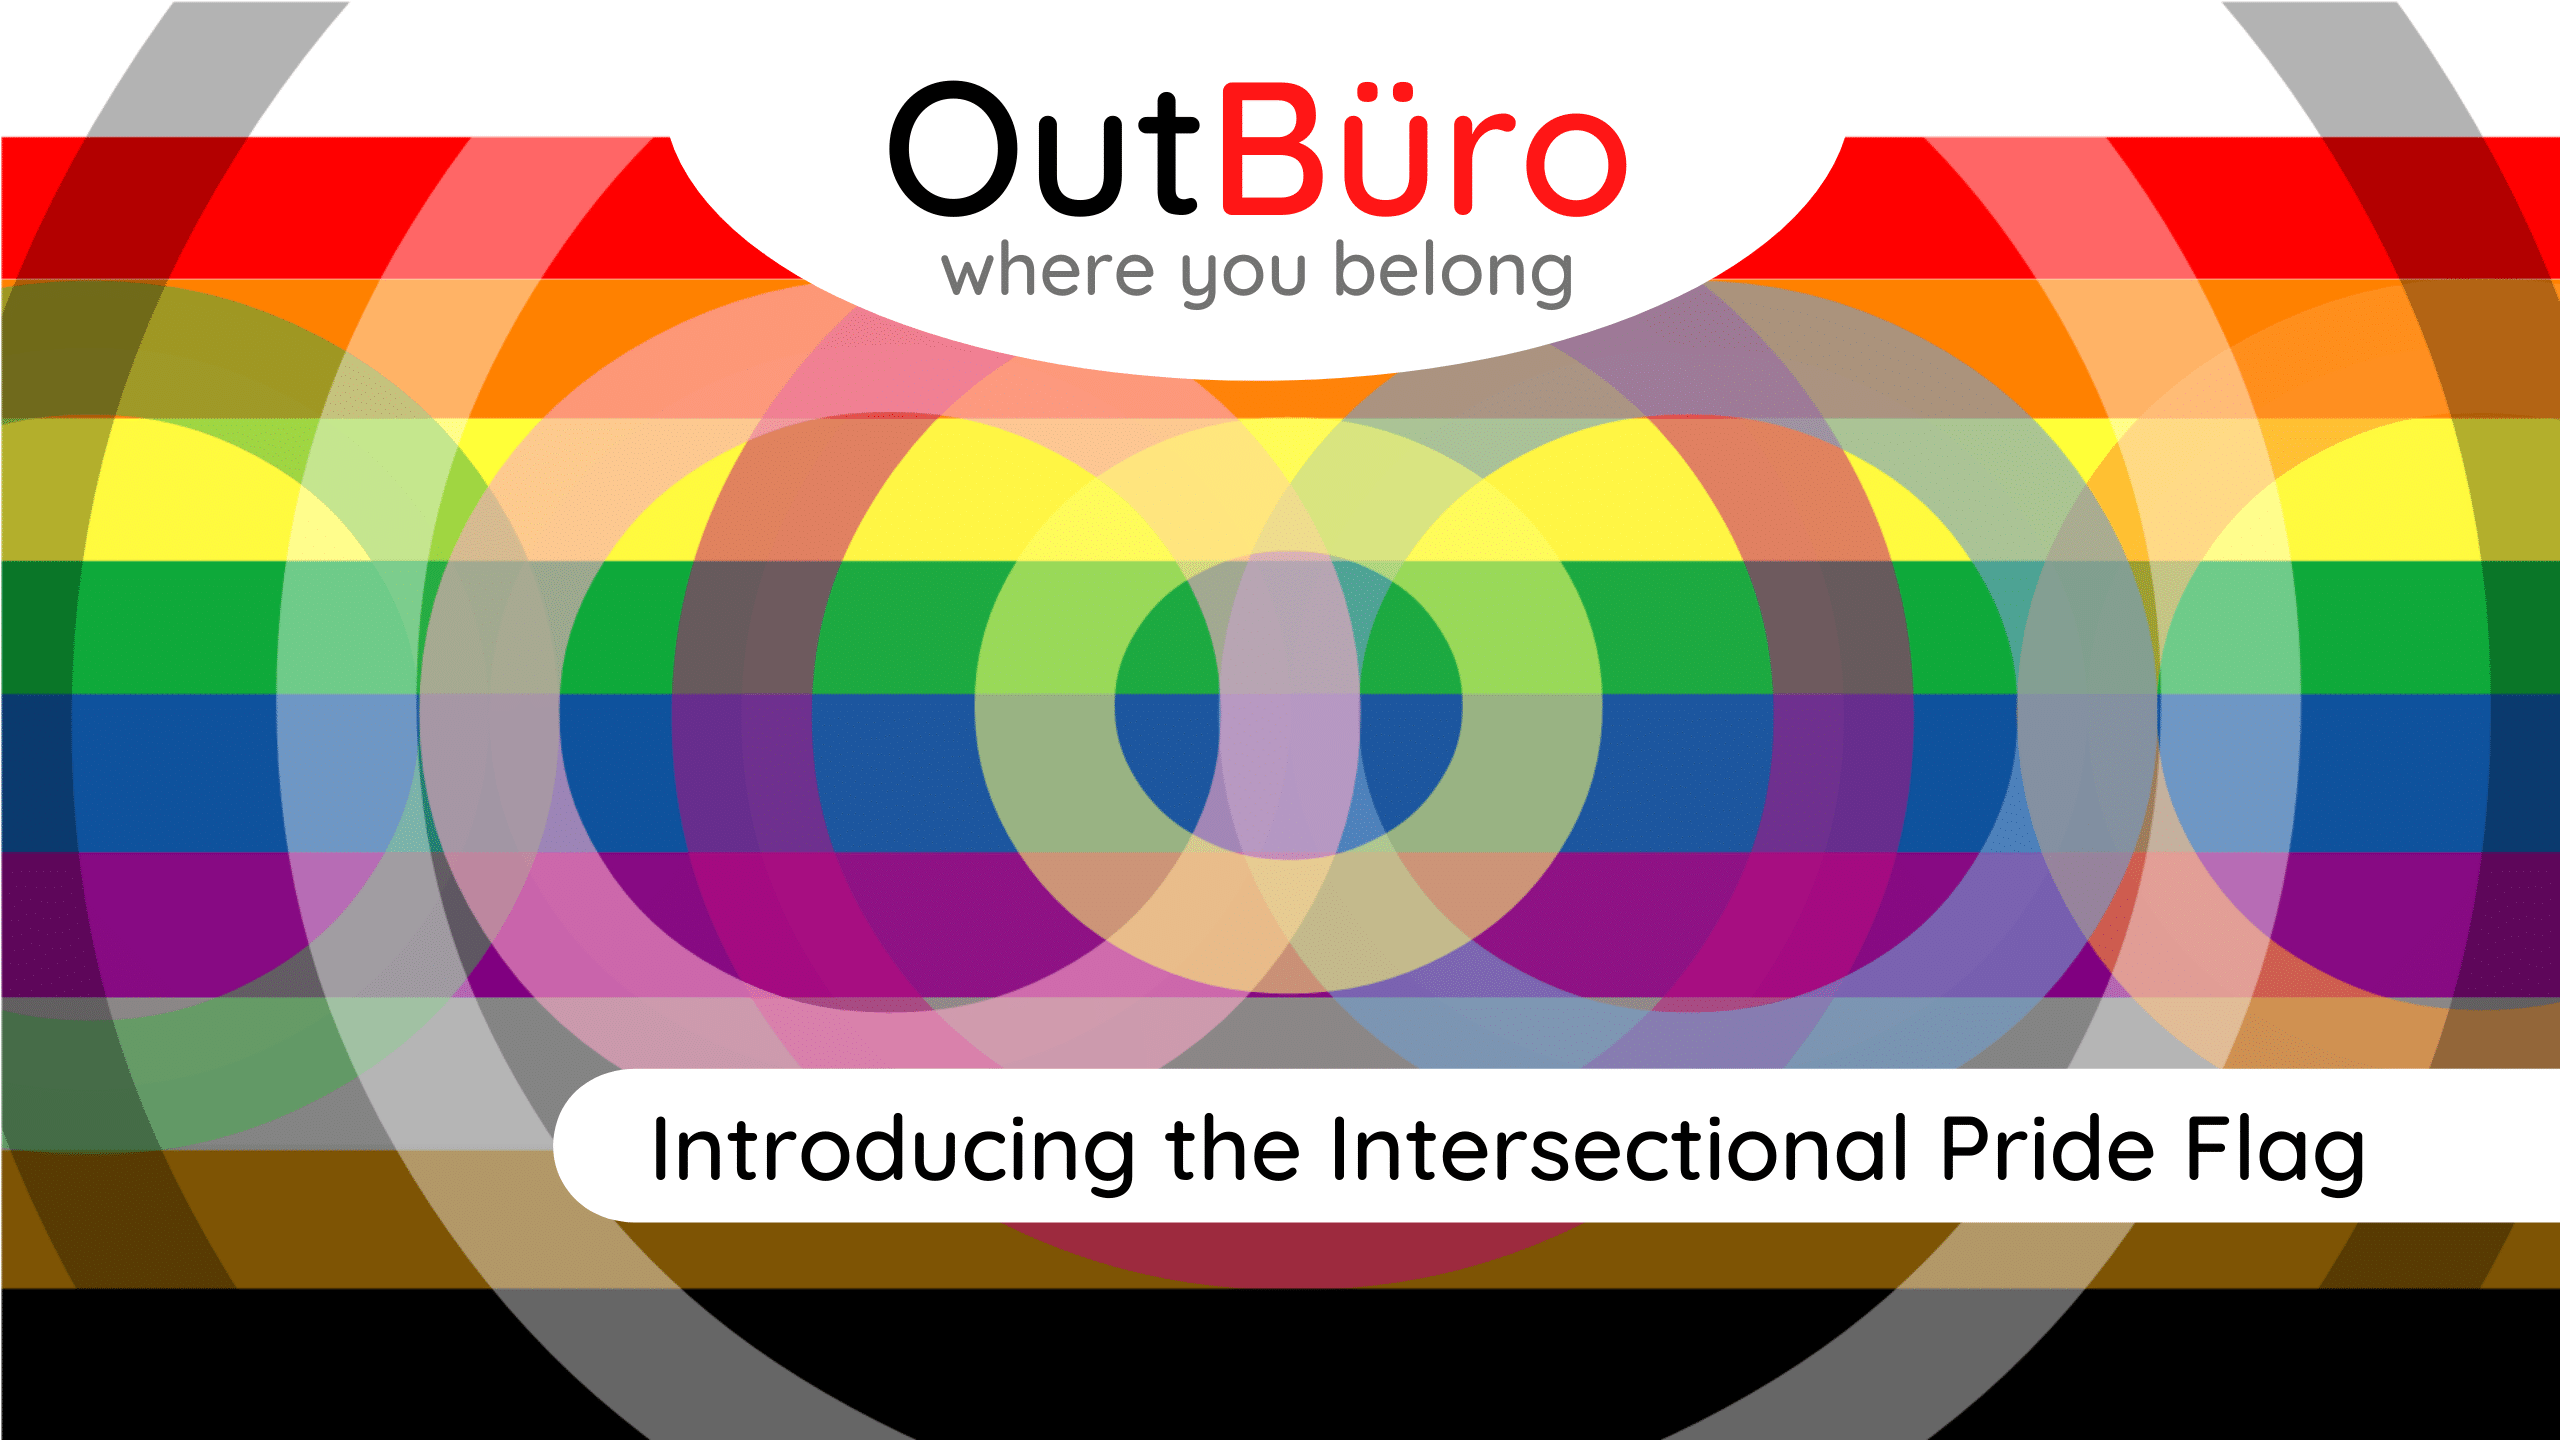 Introducing the LGBTQ Intersectional Pride Flag by Denmis Velco OutBuro founder